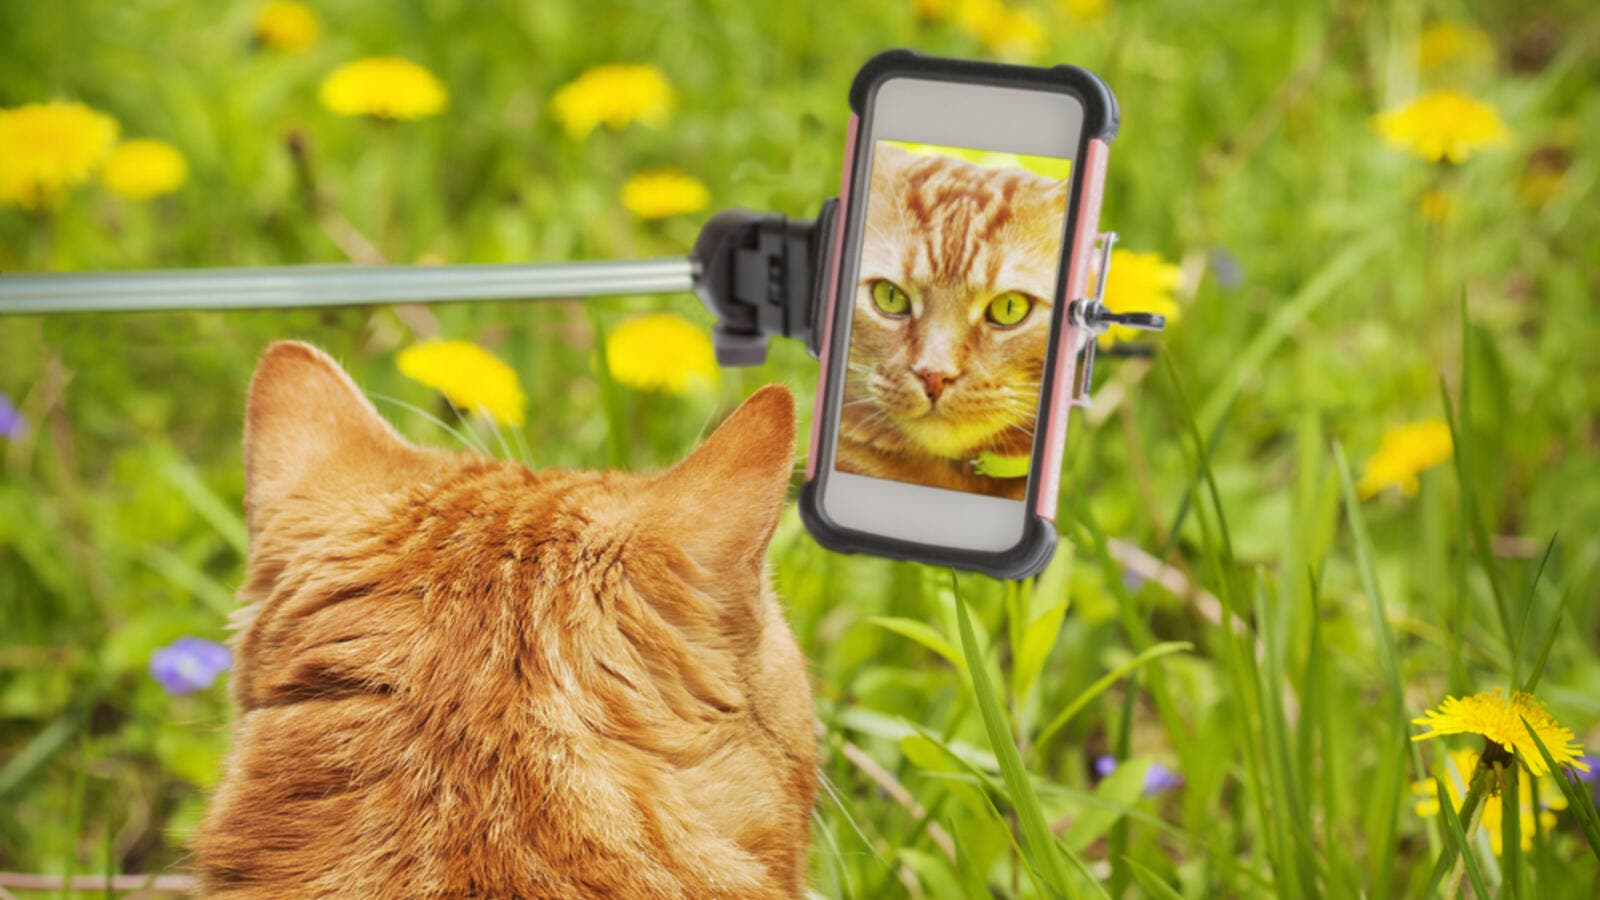 Selfies with cats, dogs, wolves, Snapchat filters, photography in general, and Pokemon cards, are all among things banned by Saudi religious figures. (Shutterstock)